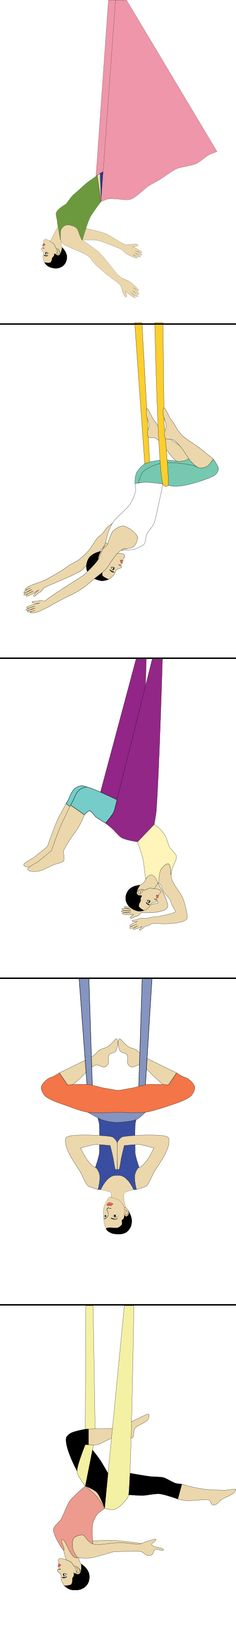 #Inversions #aerial yoga poses- Inverted Aerial yoga poses and pose guide.